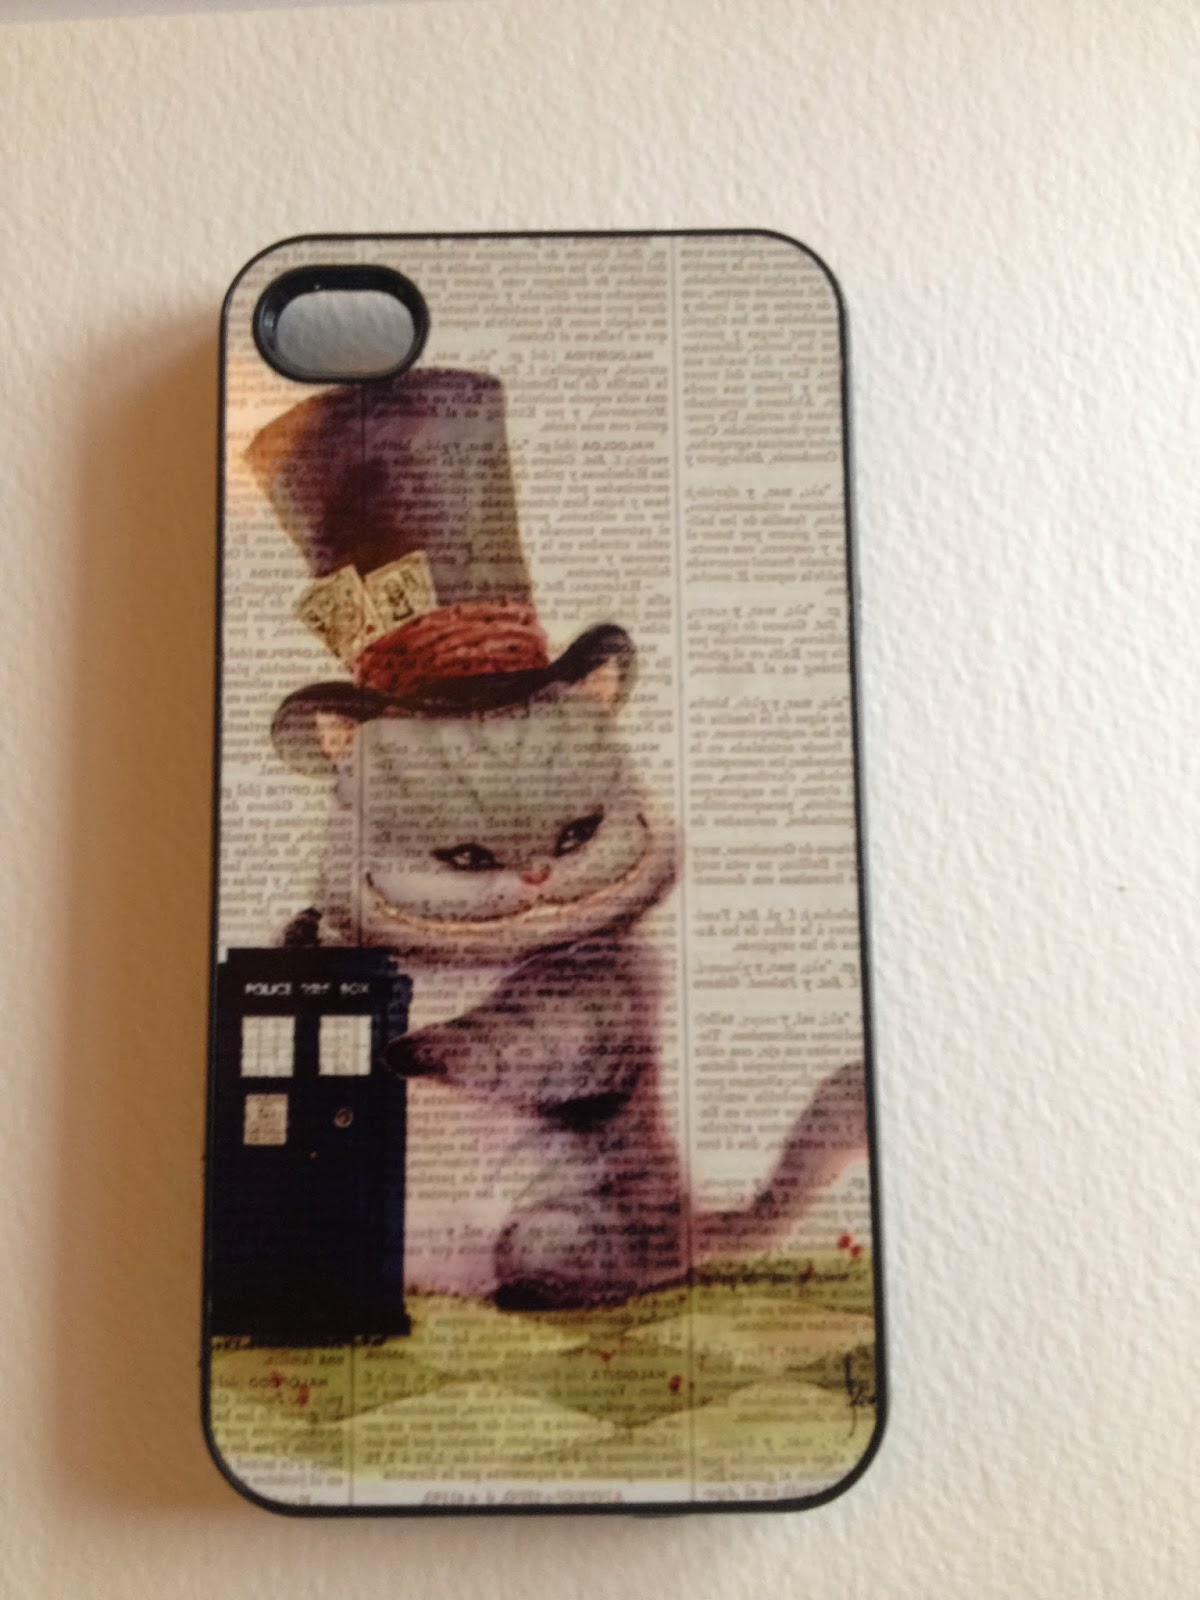 Alice in Wonderland and Doctor Who iPhone cover